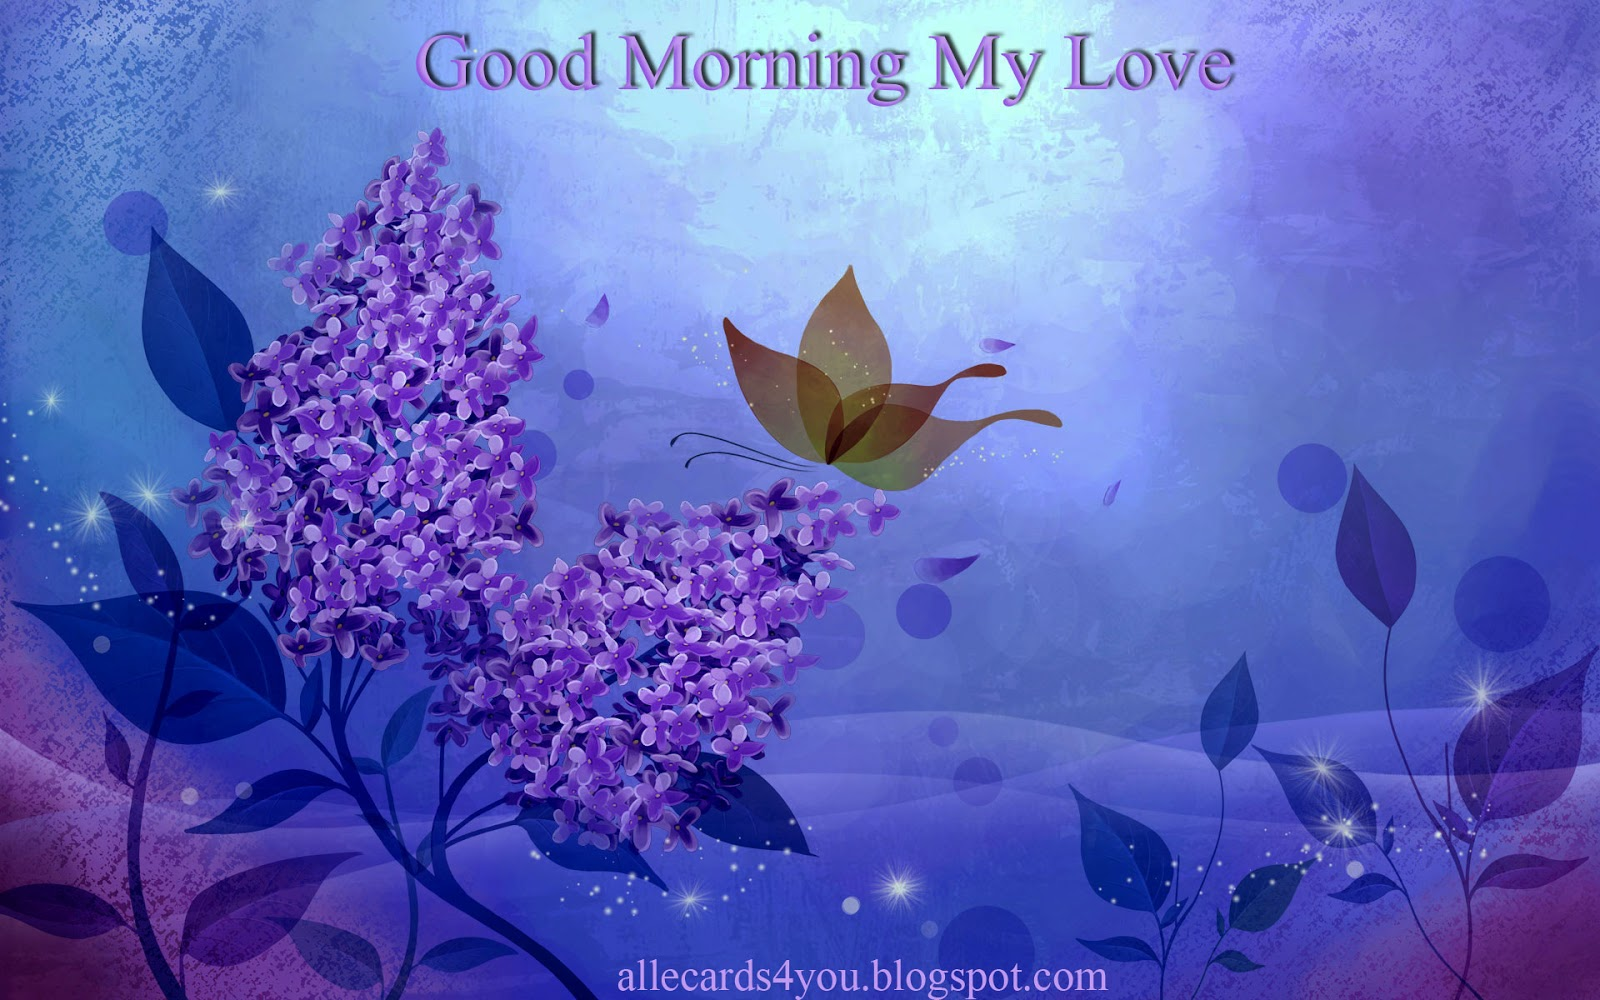 Good Morning Love Animated : Good morning my love e cards pictures